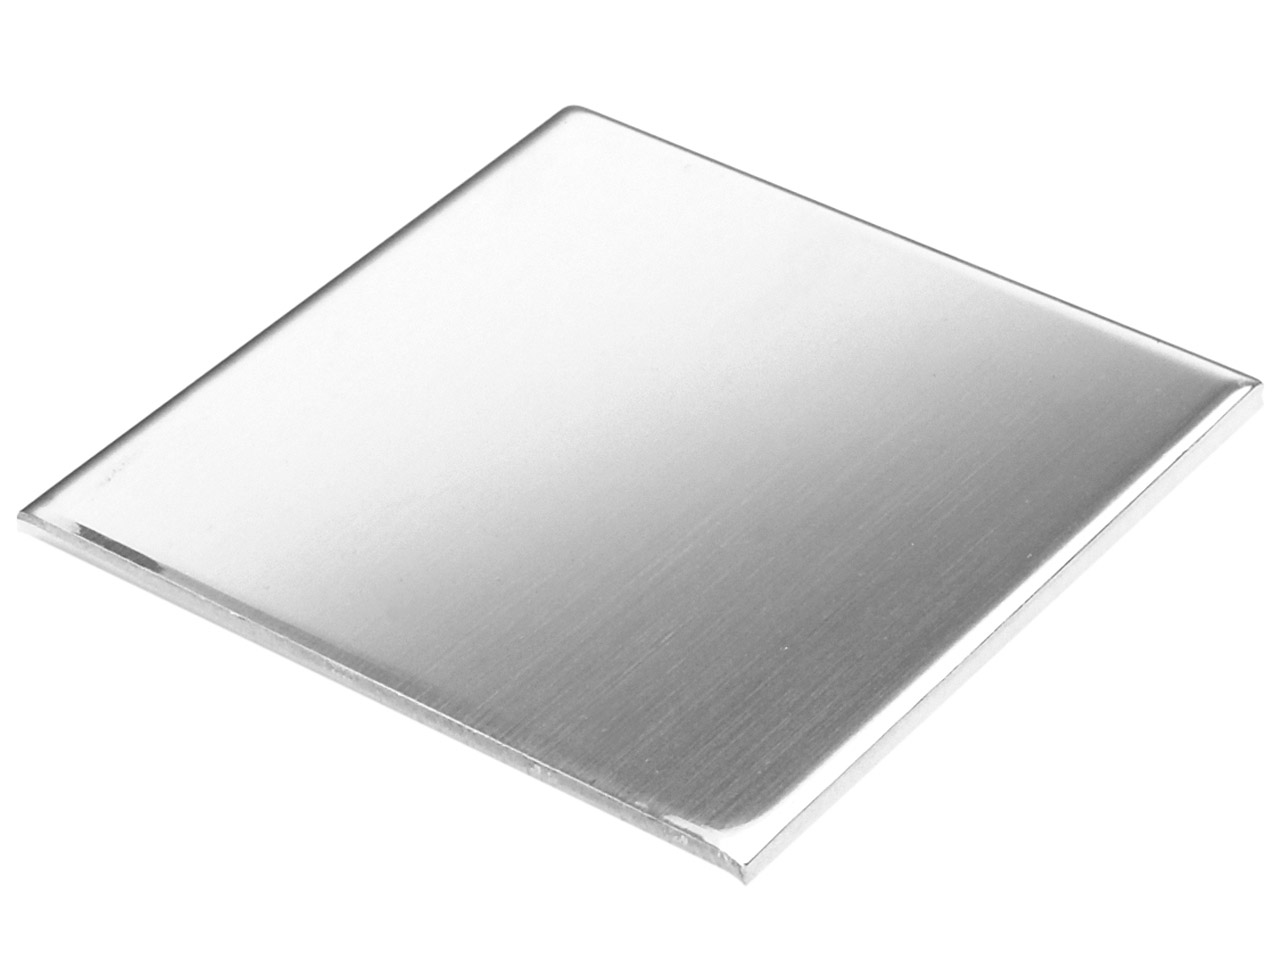 Aluminium Sheet 100x100x0.7mm